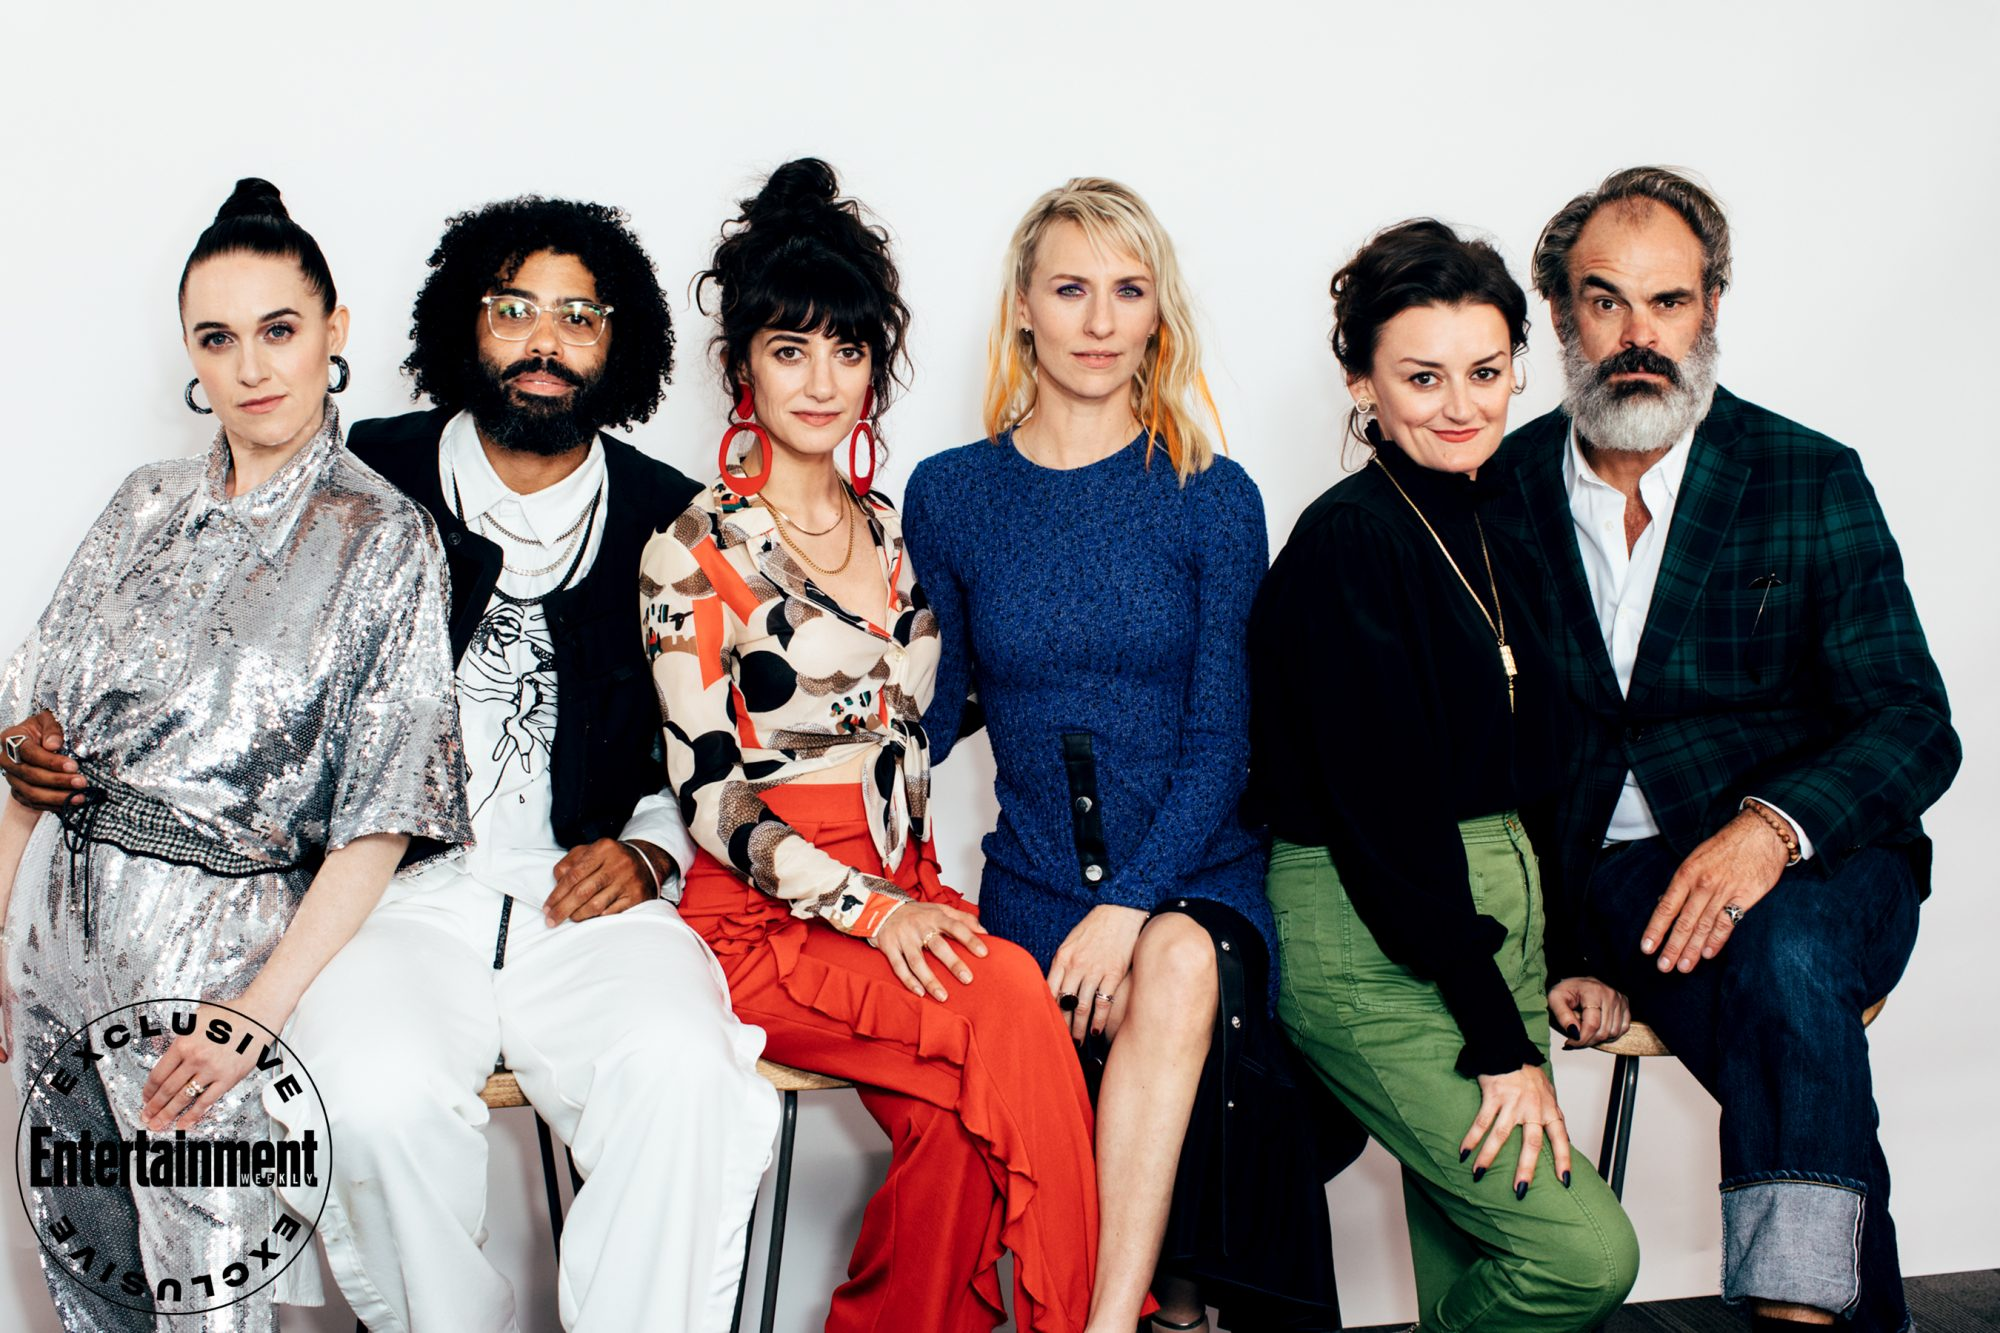 Lena Hall, Daveed Diggs, Sheila Vand, Mickey Sumner, Alison Wright, and Steven Ogg from Snowpiercer